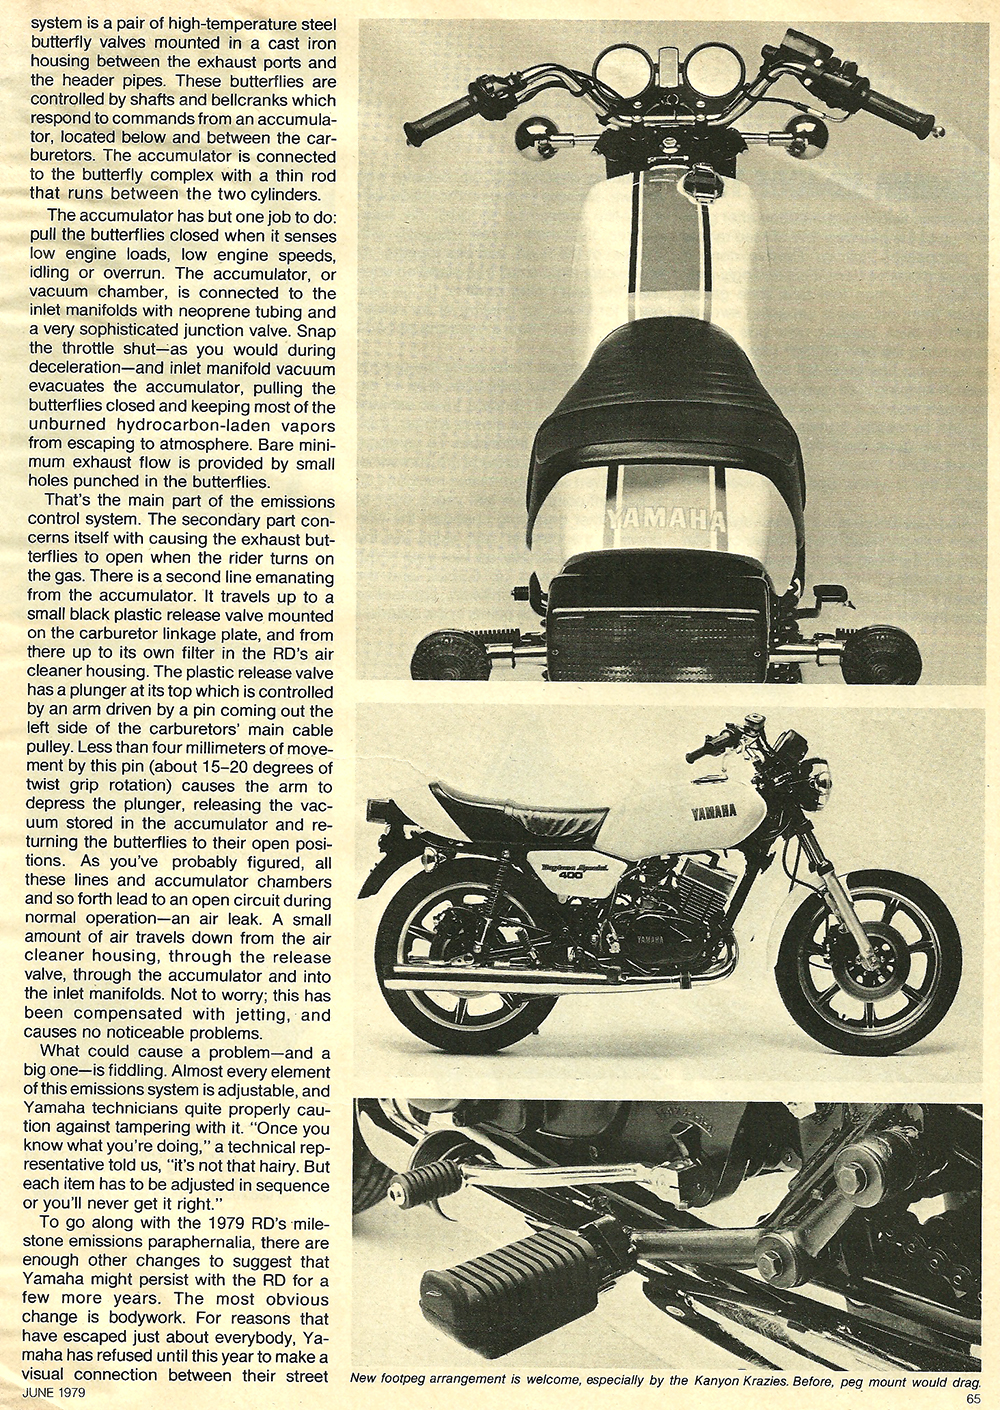 1979 Yamaha RD400F road test 04.jpg